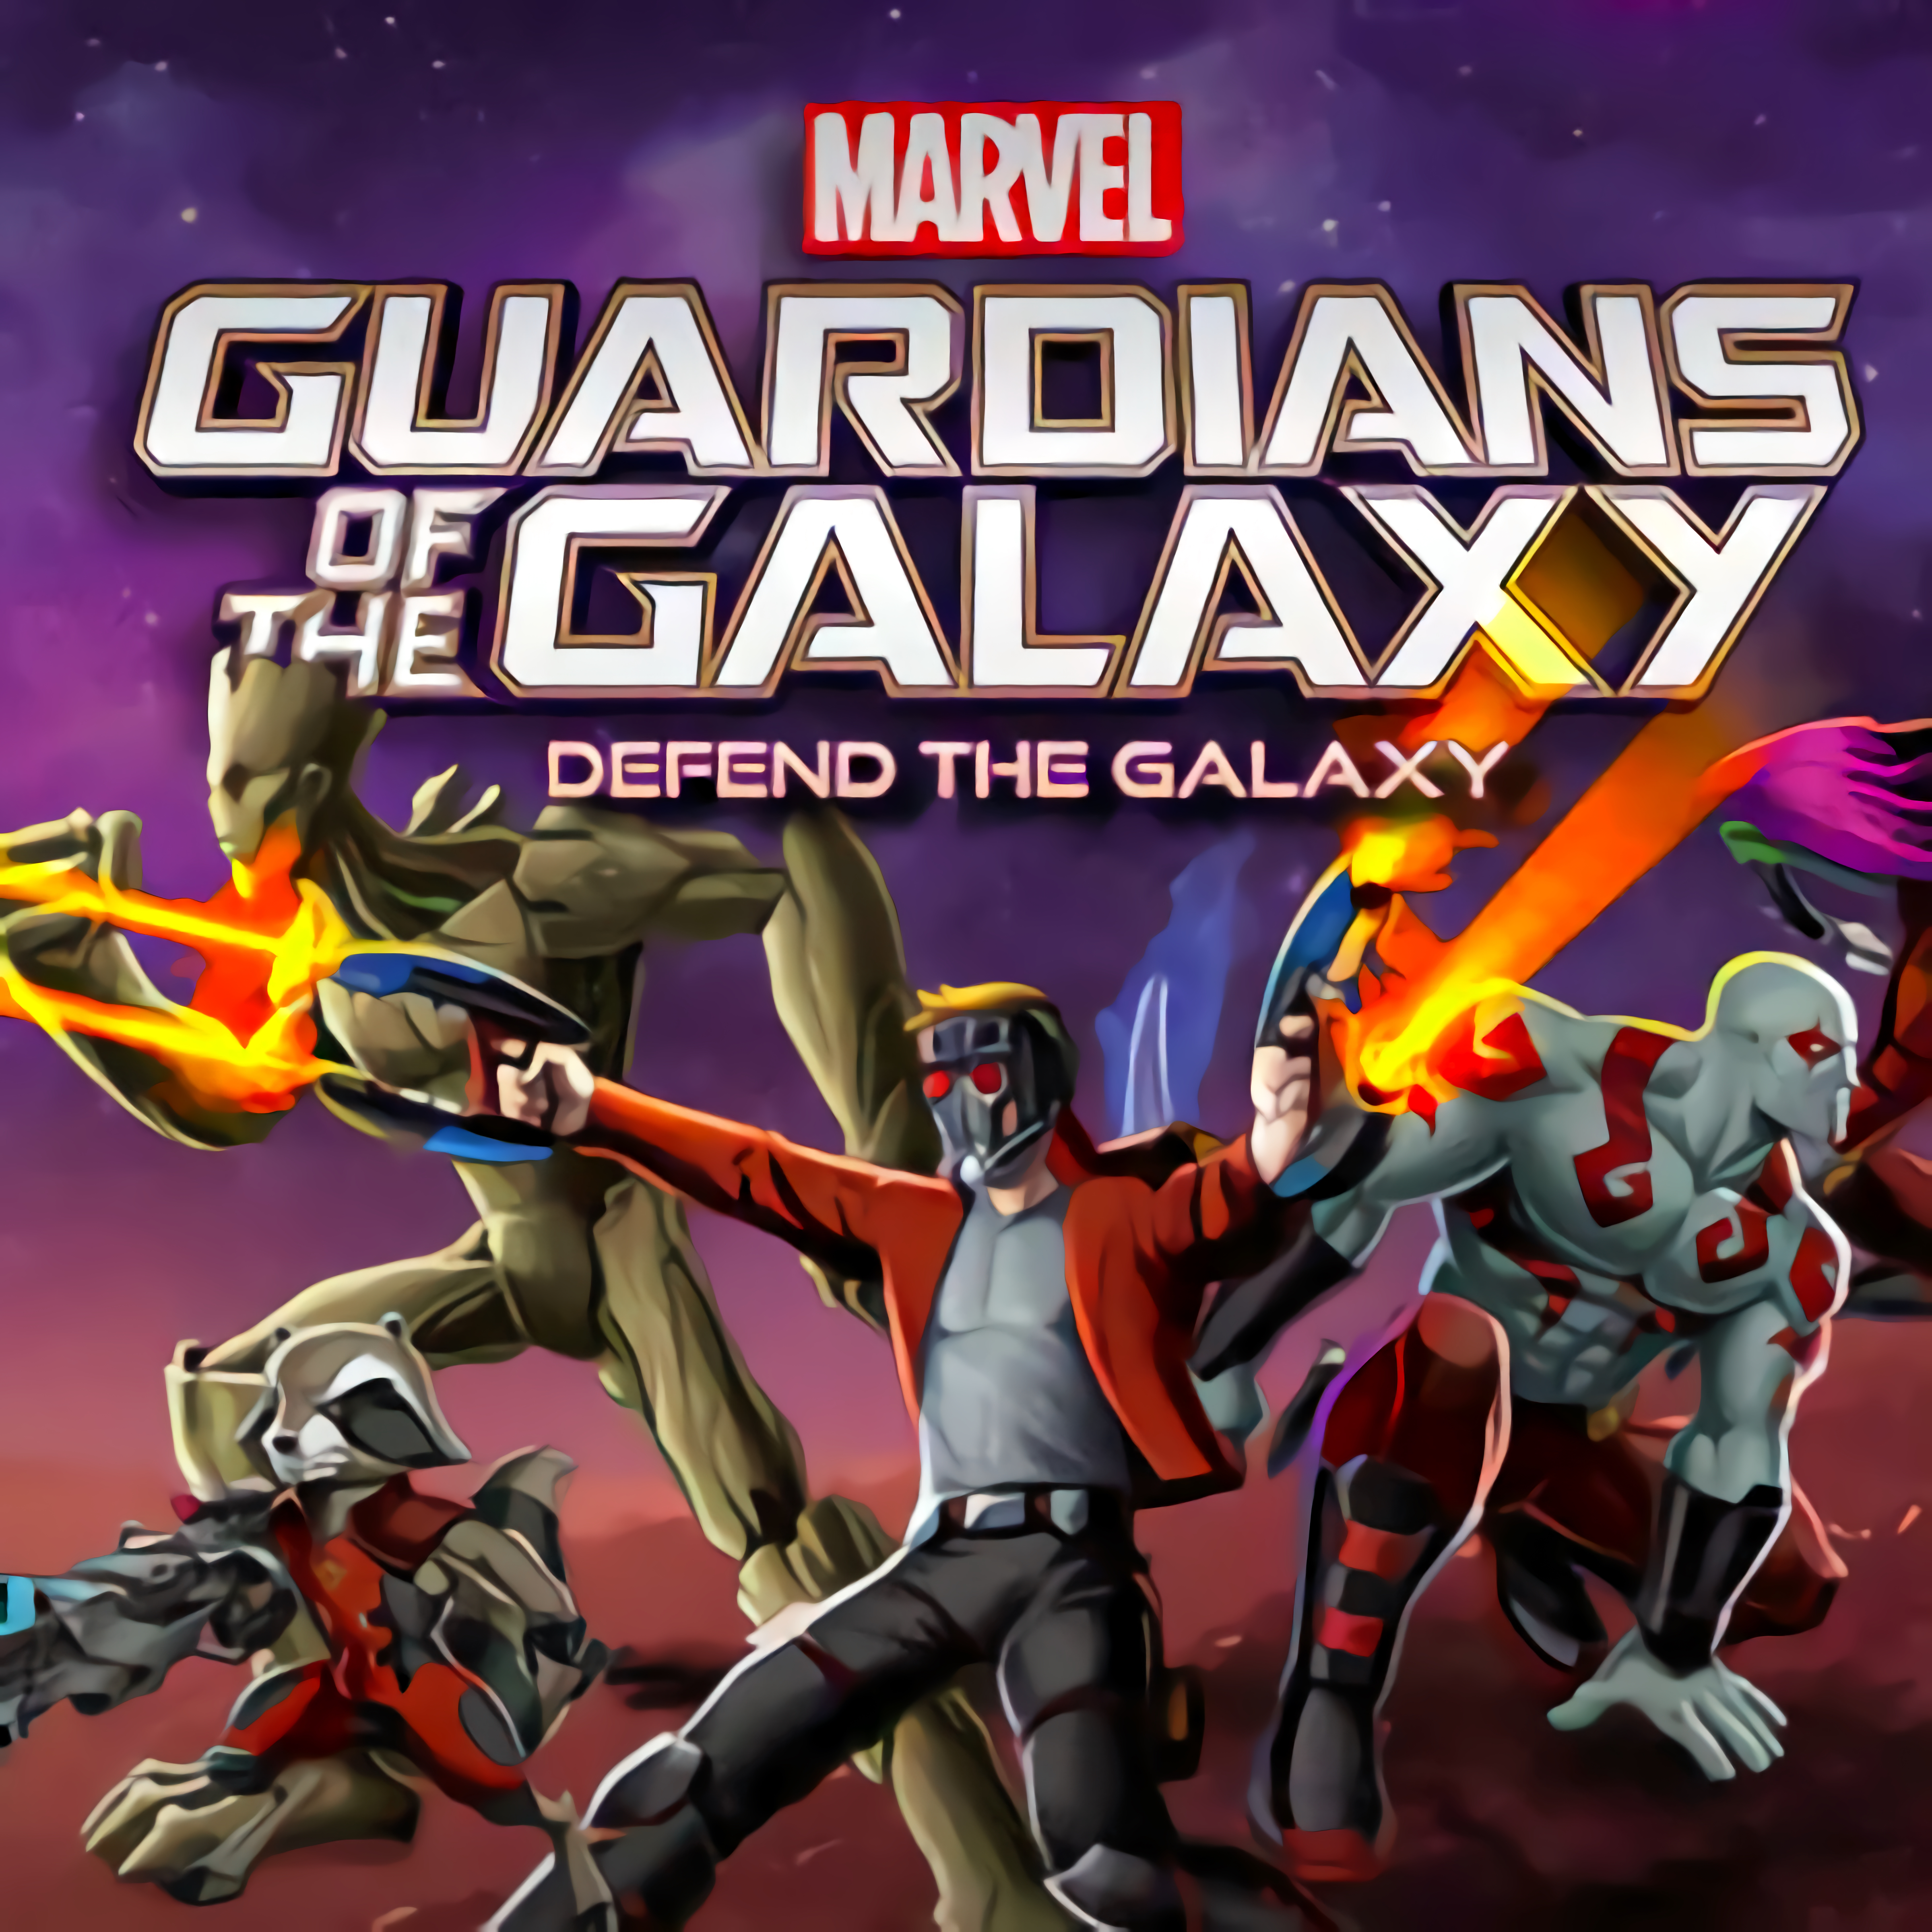 Defend The Galaxy - Guardians of the Galaxy